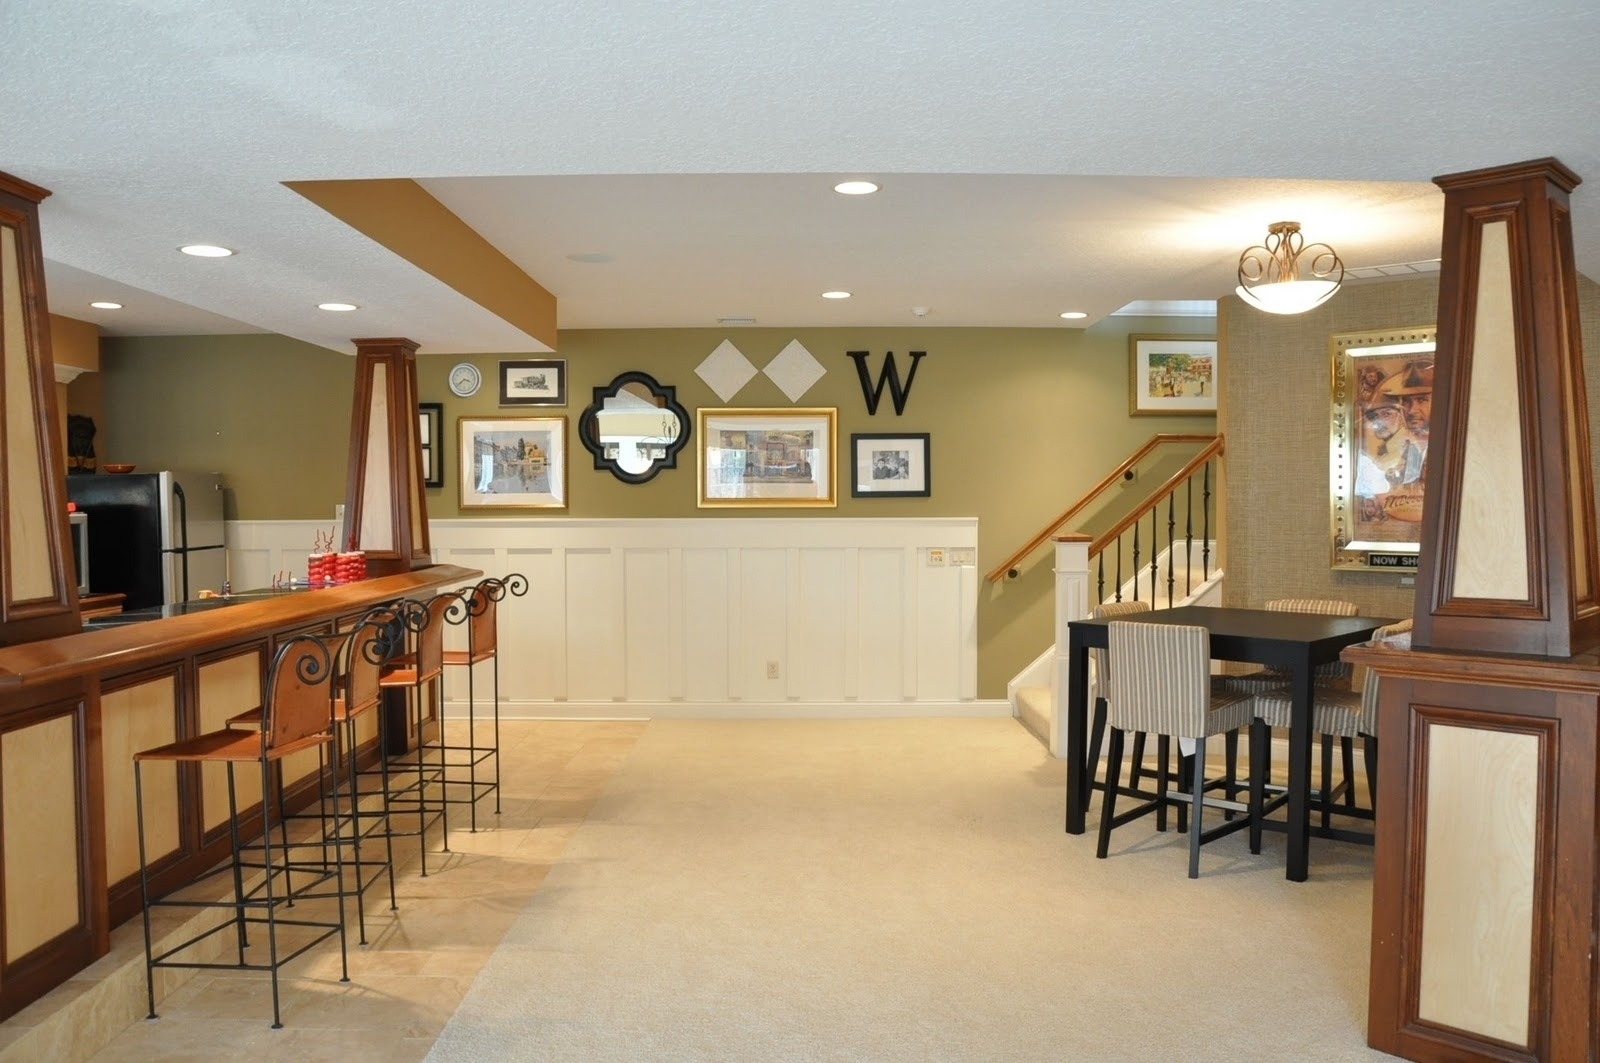 Accent Wall Ideas For Basement • Wall Decorating Ideas Throughout Most Up To Date Basement Wall Accents (View 1 of 15)